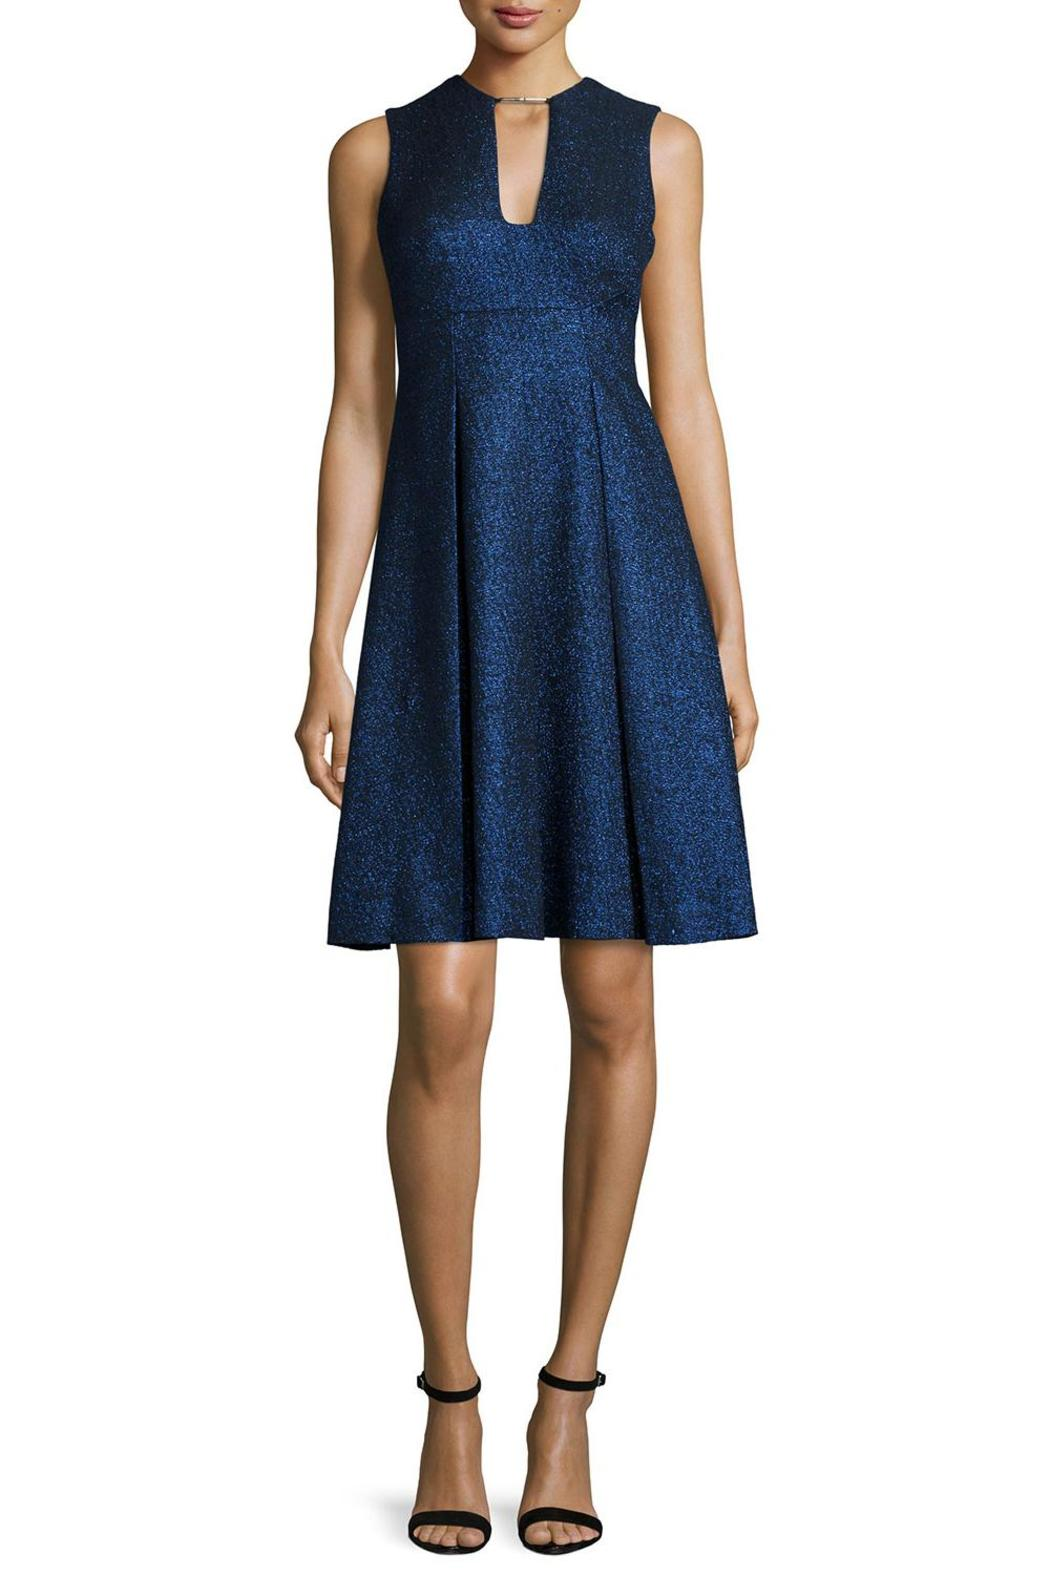 Lela Rose  V-Neck Dress - Main Image